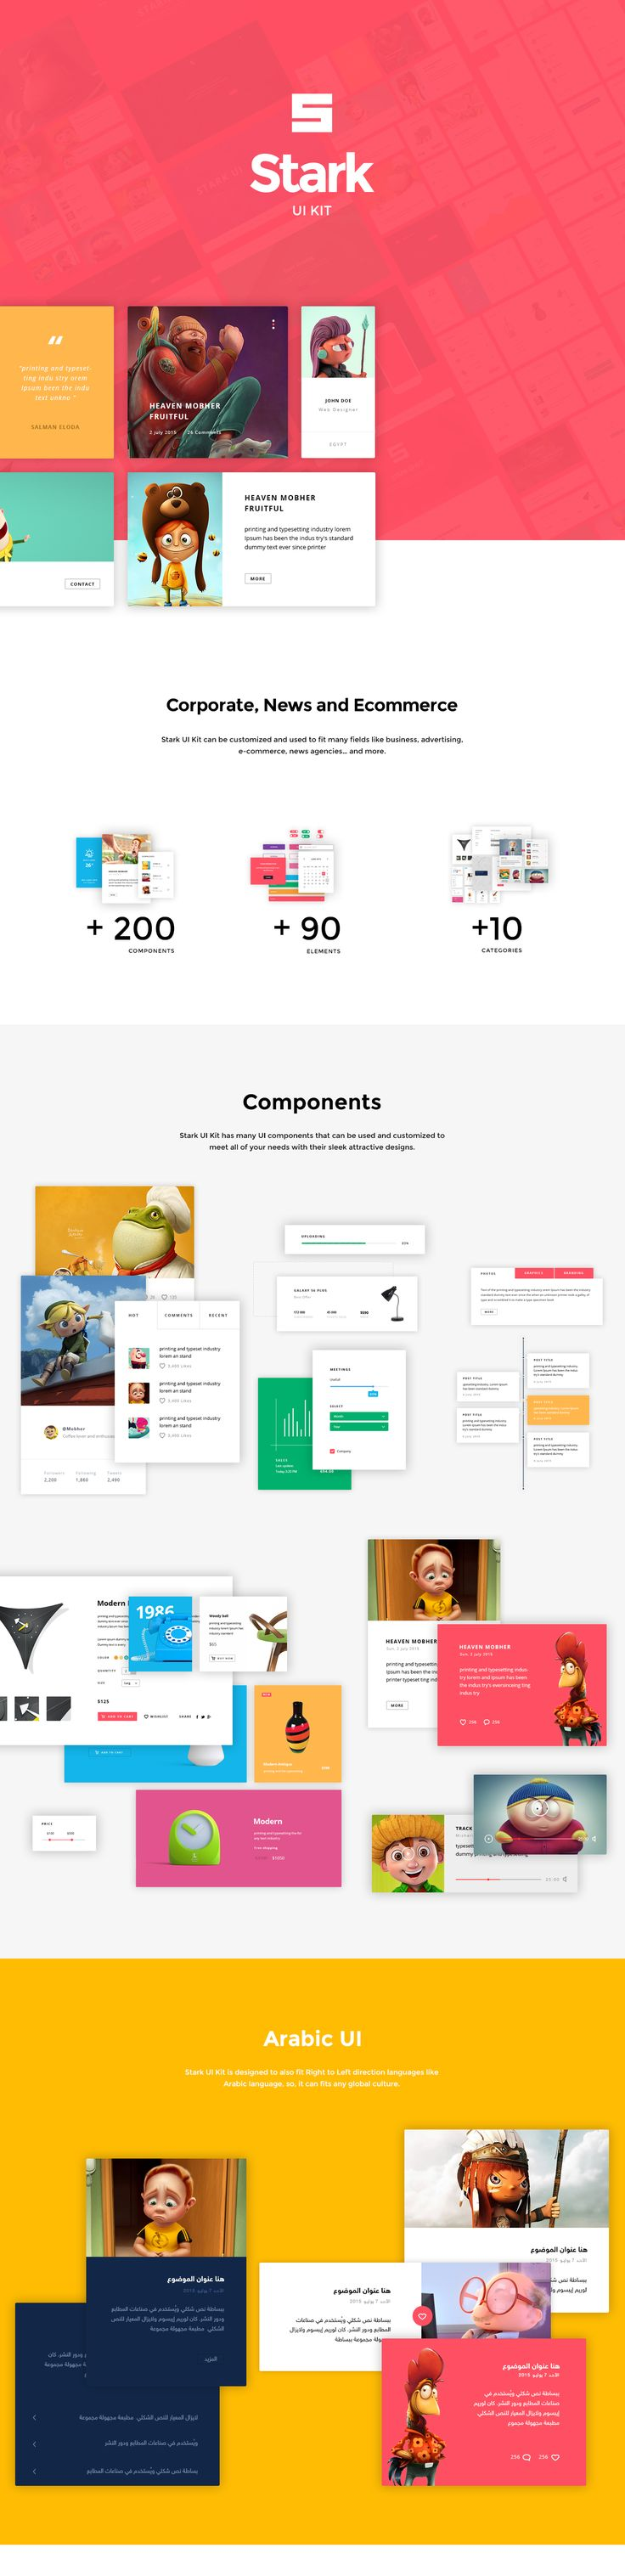 New Free PSD UI Kit (200+ Components, 90+ Elements)